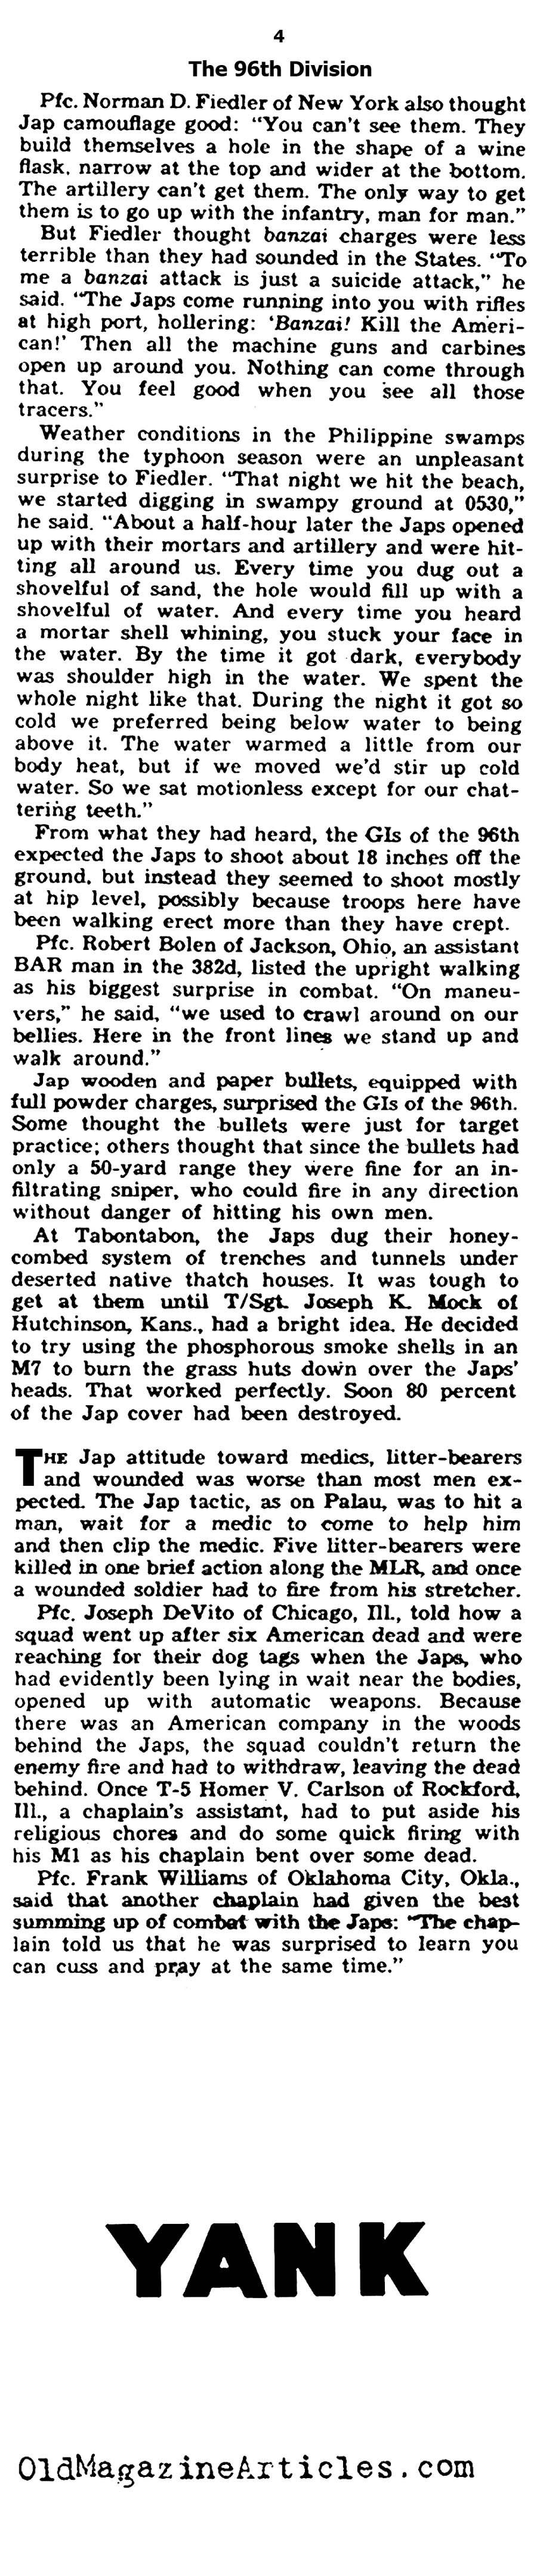 War Stories from the Pacific (Yank Magazine, 1945)